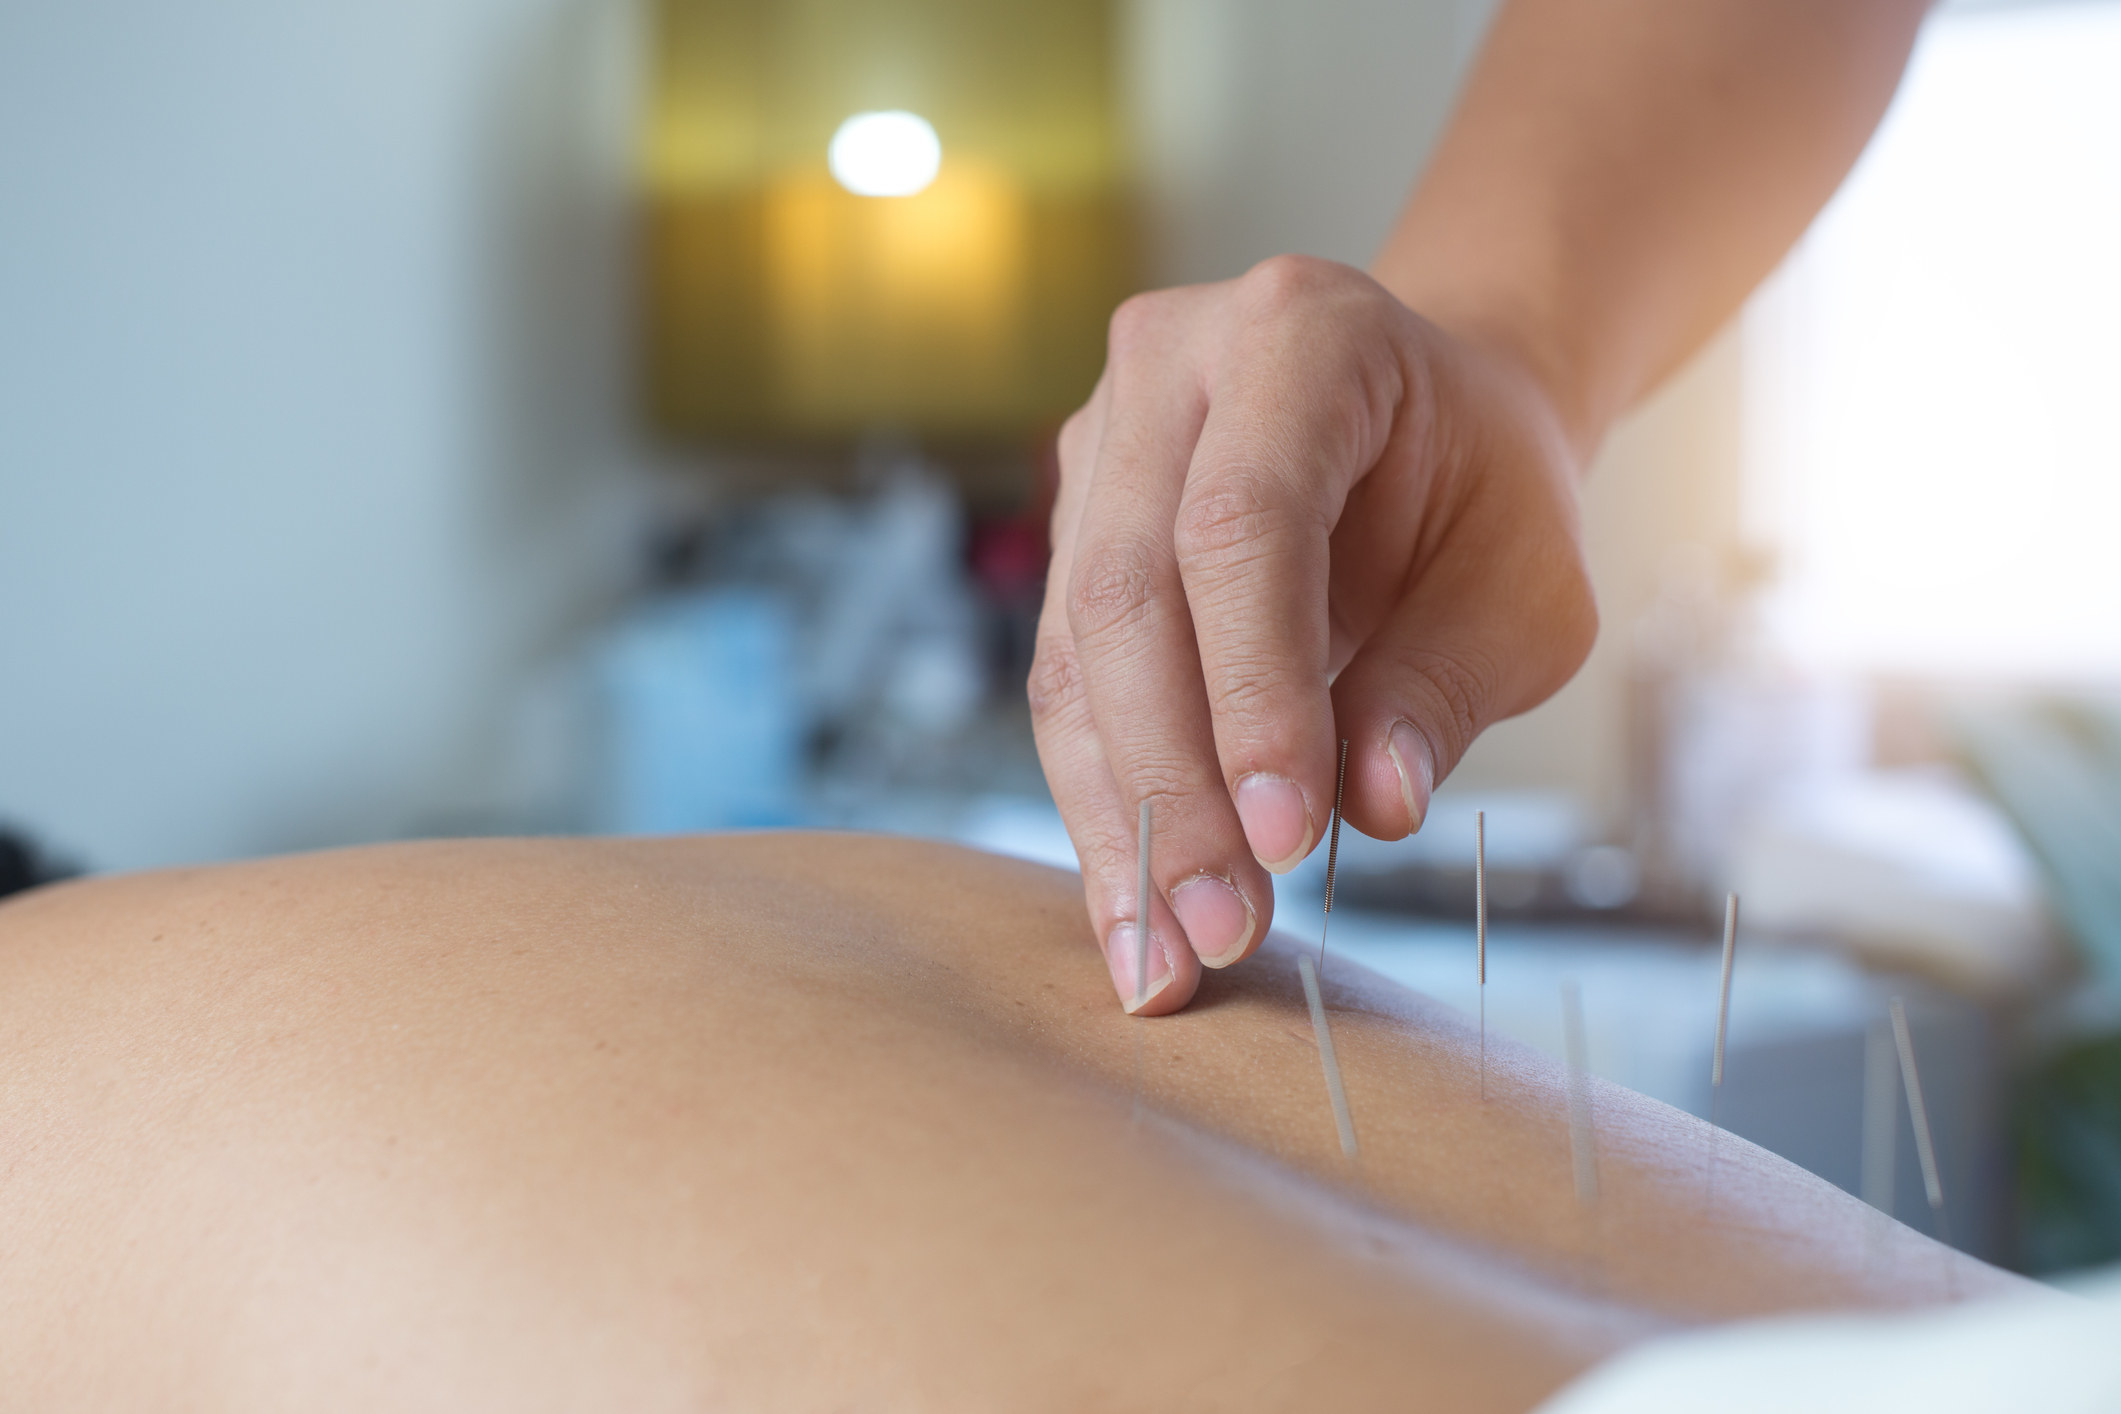 An image of needles being inserted during acupunture